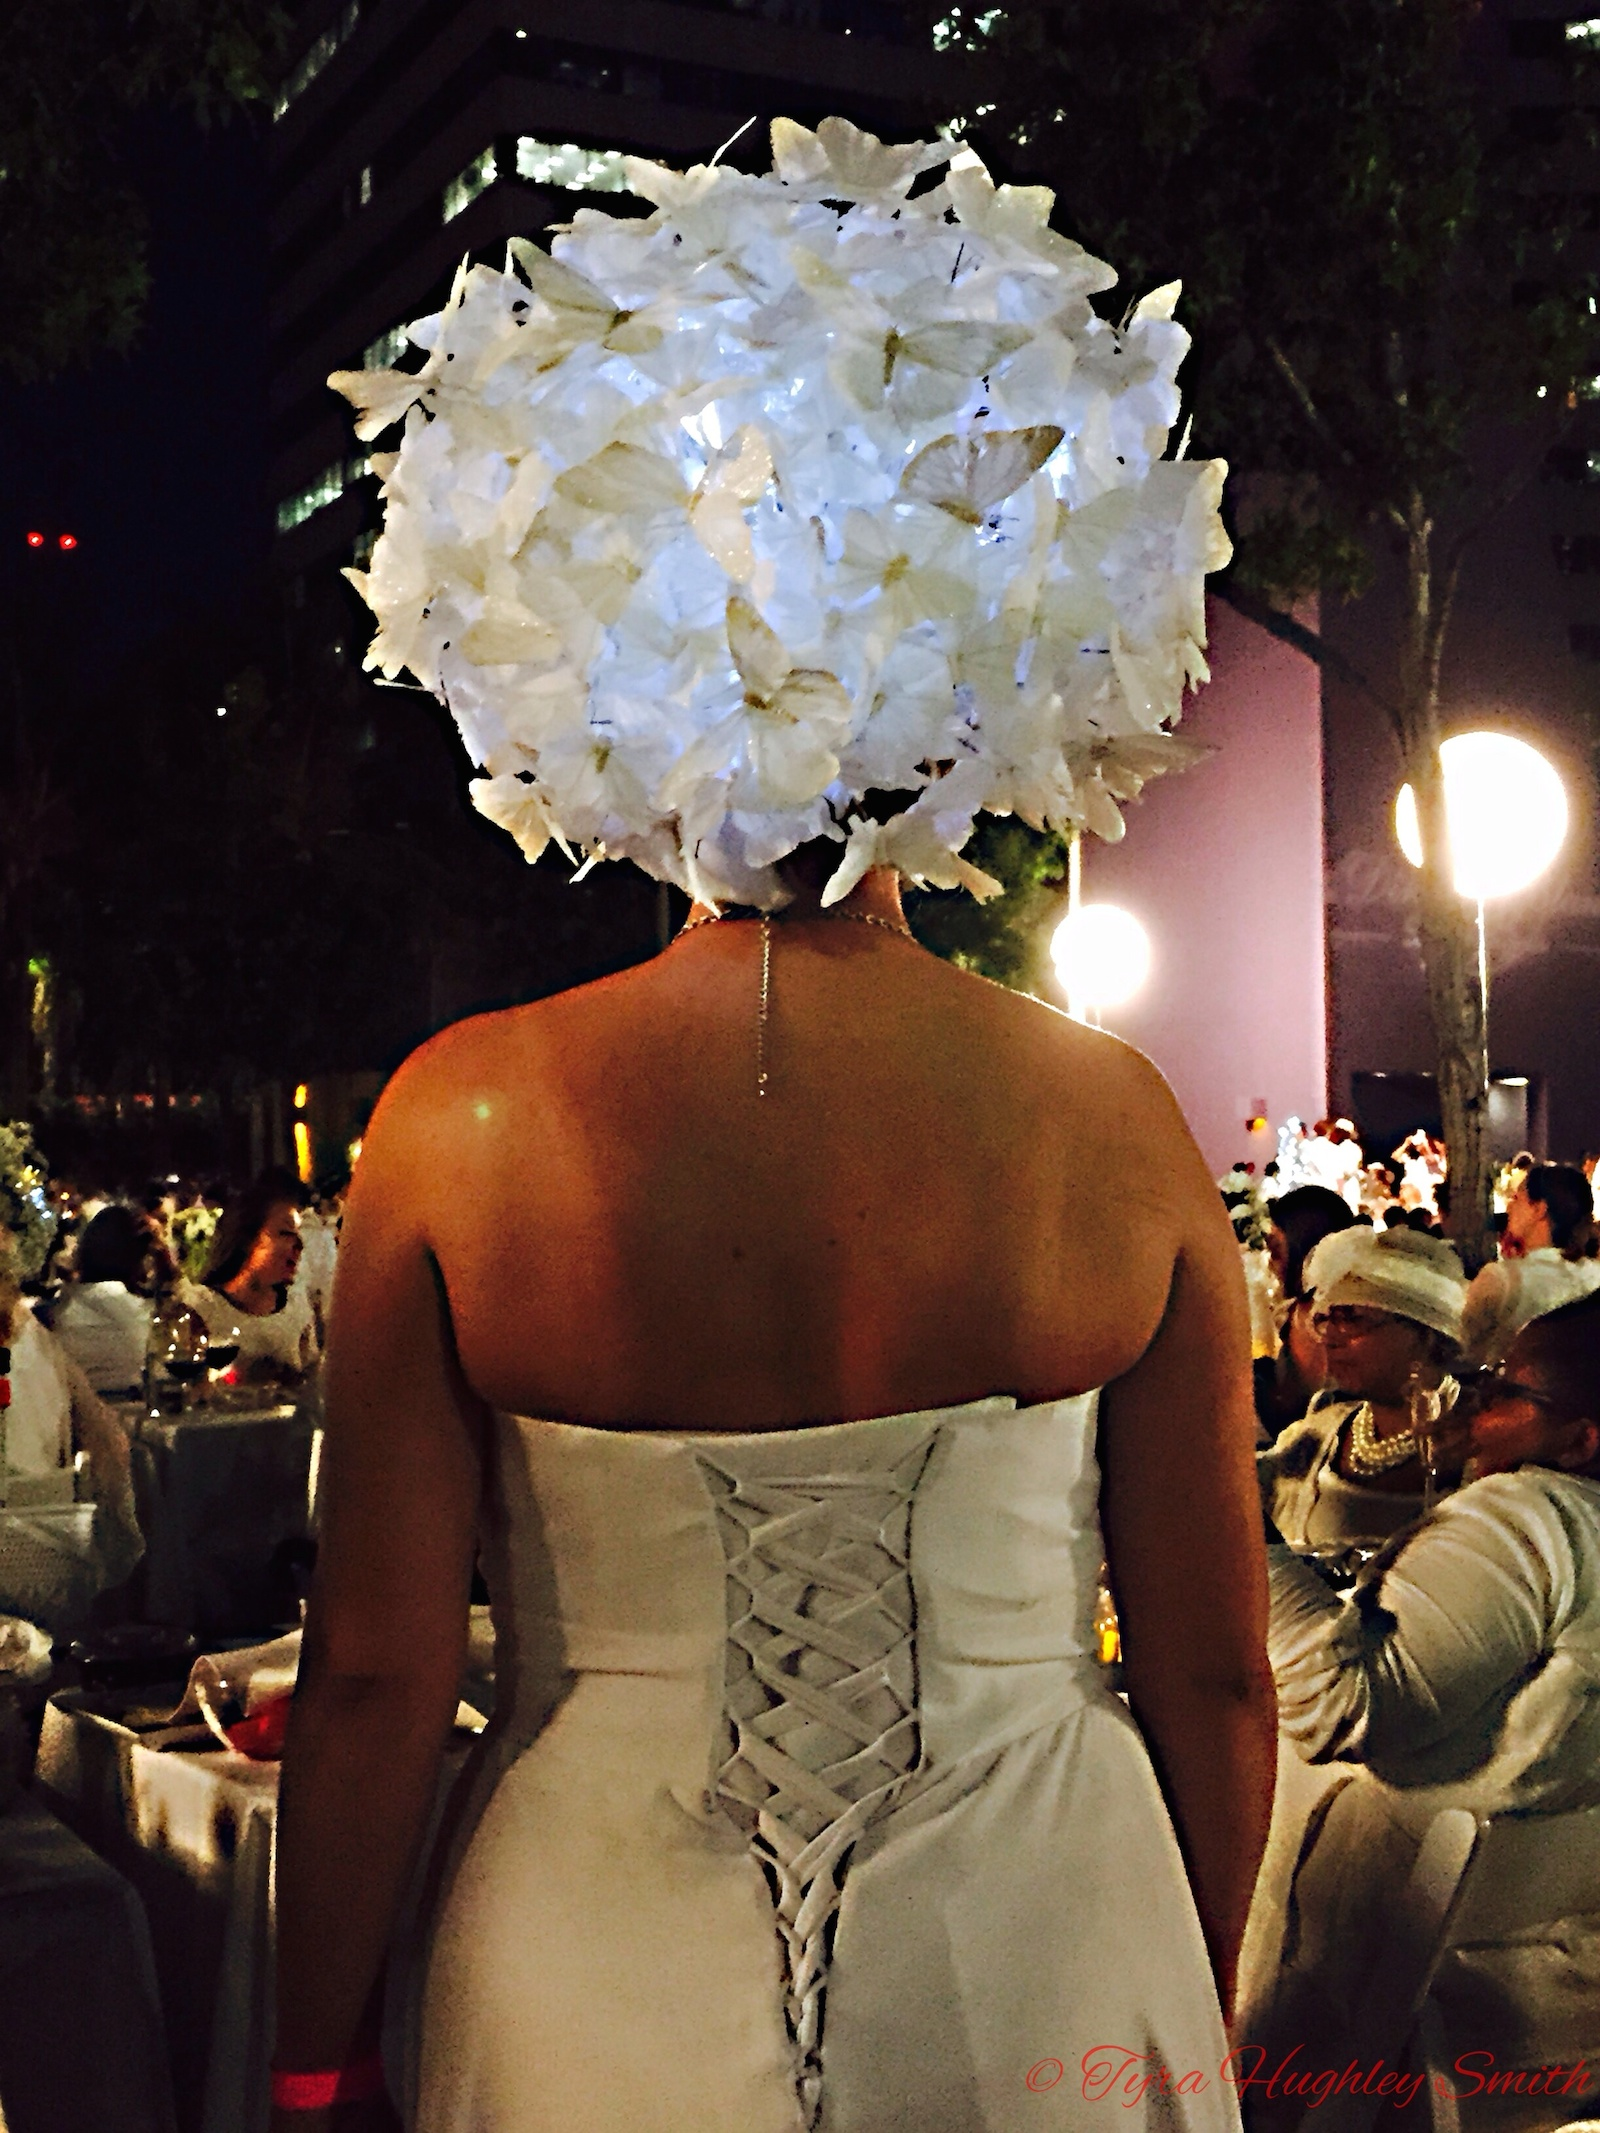 BarrisTourista-Diner en Blanc Los Angeles 2015 Headpiece